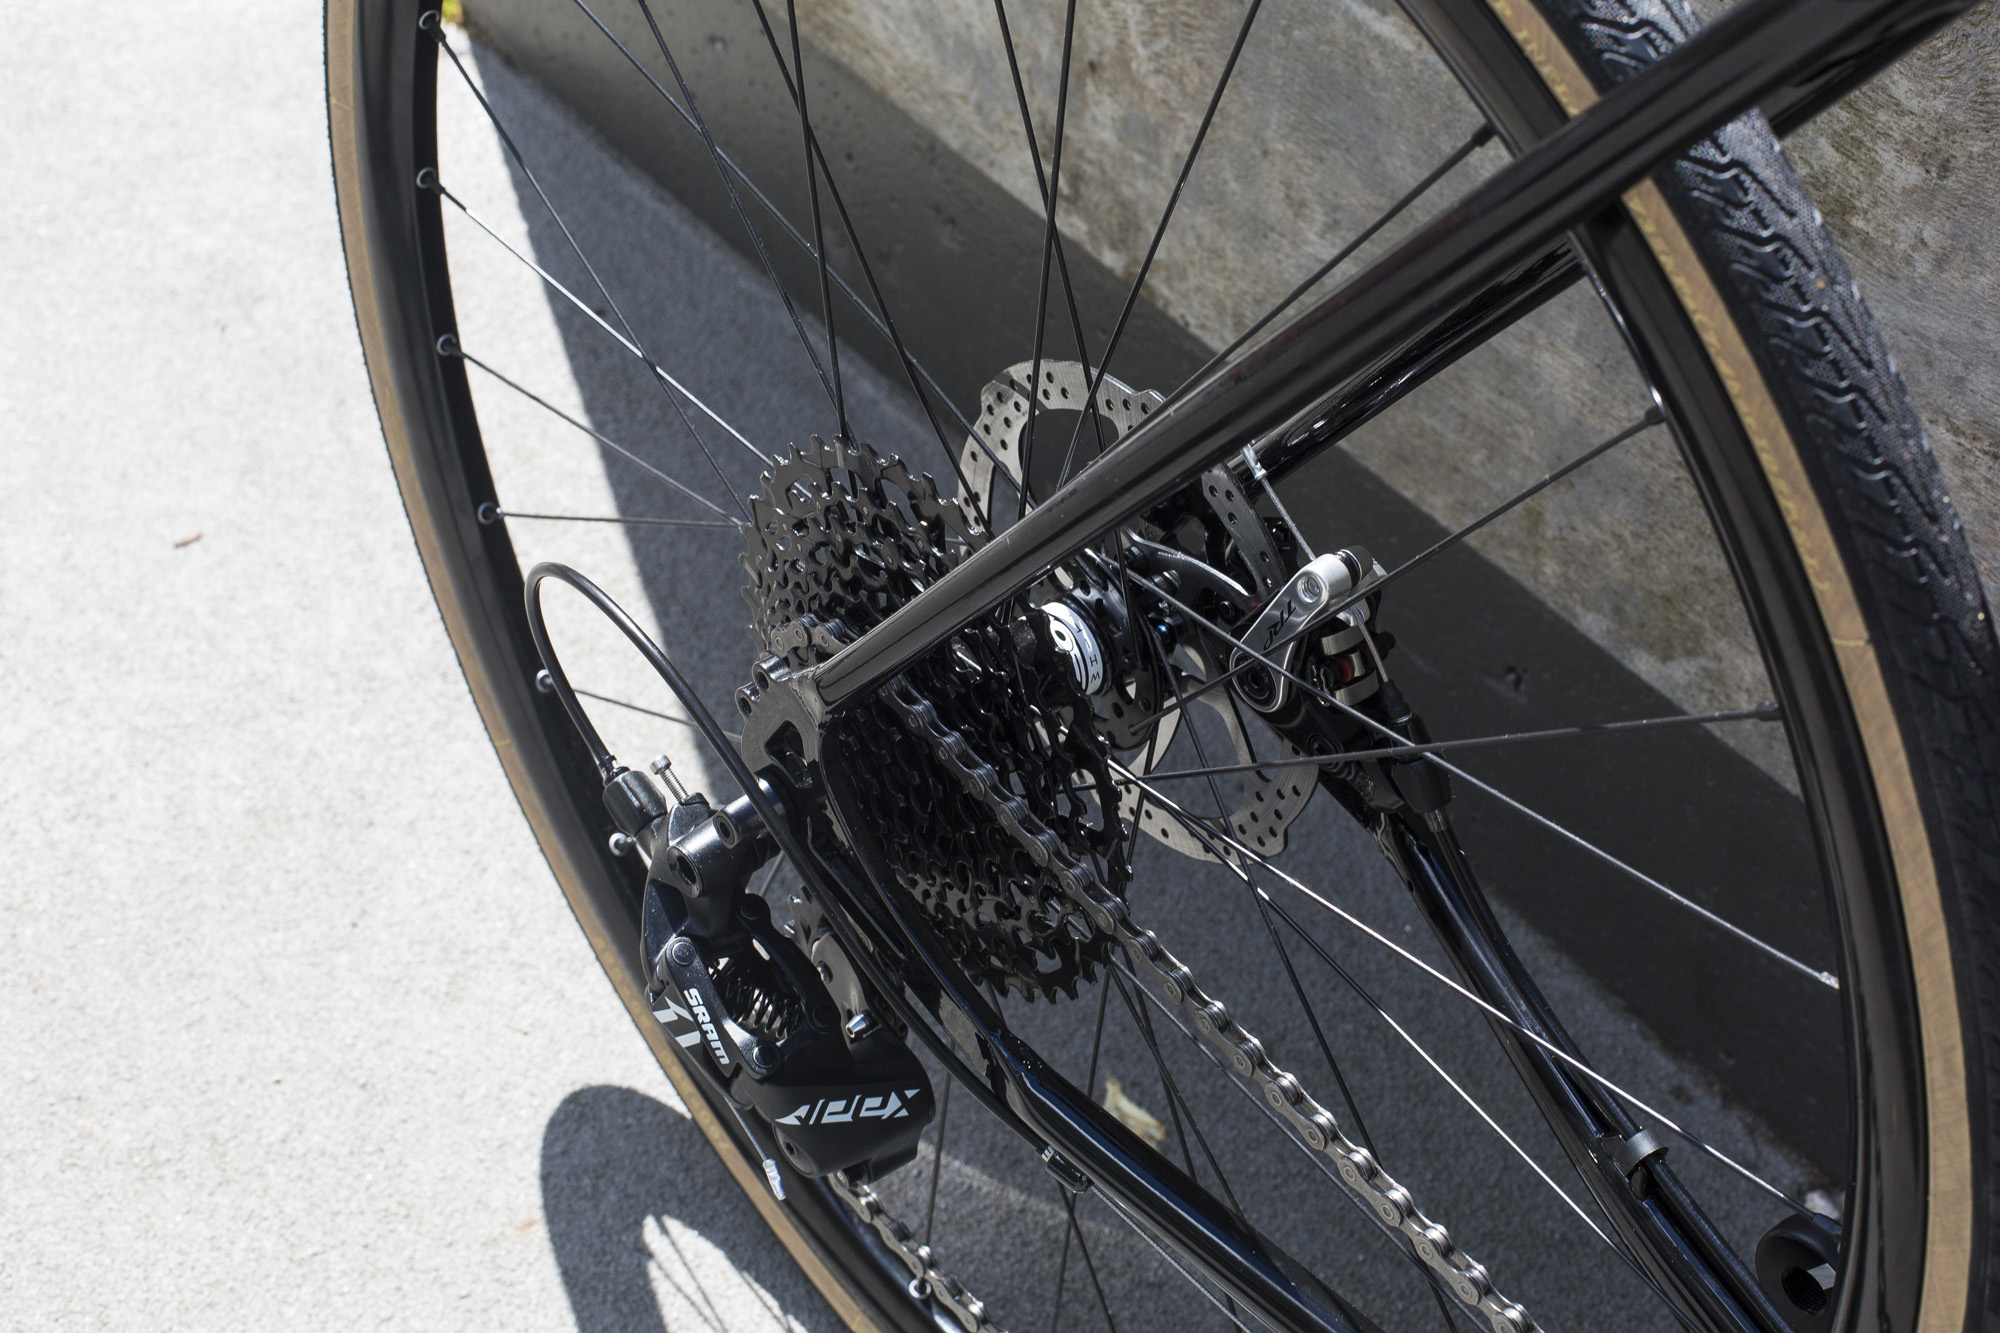 seabass-cycles-instore-bikes-25-april-2019-brother-cycles-kepler-disc-complete-black-5202.jpg